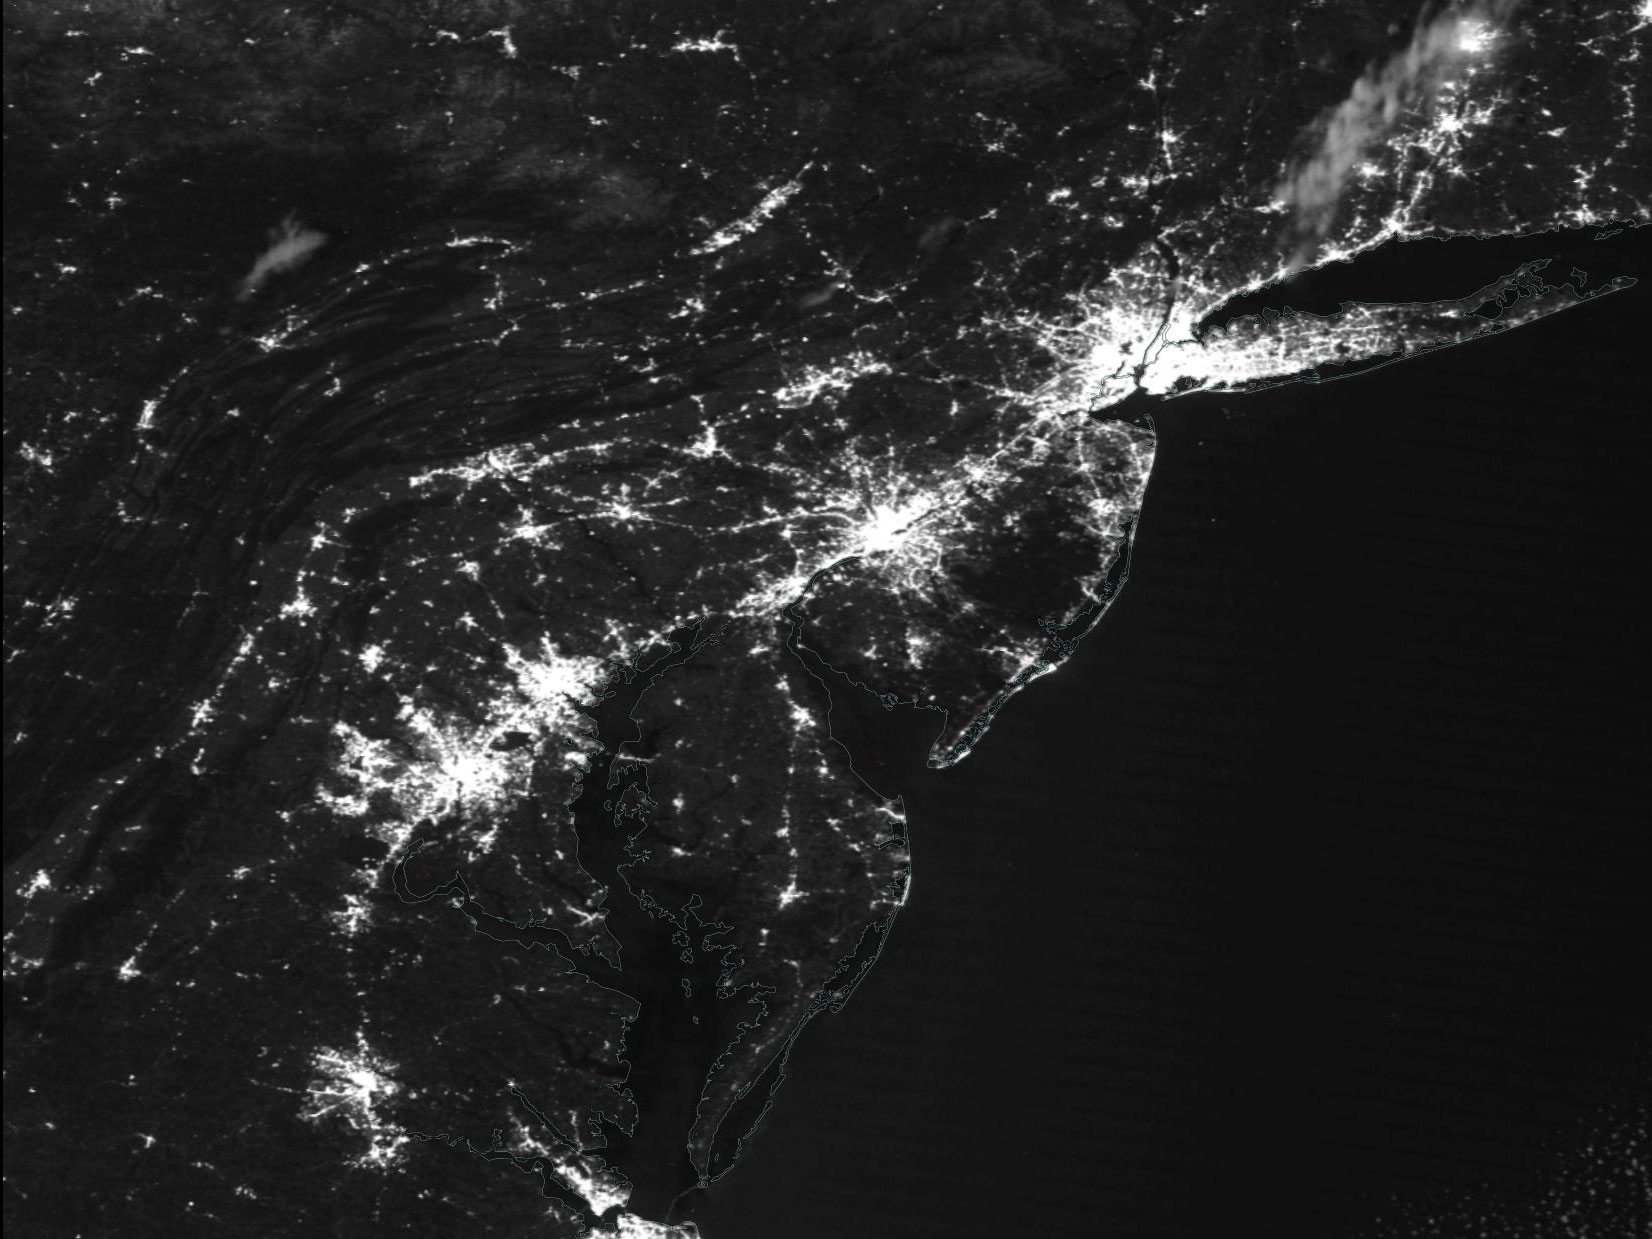 US East Coast at Night on 9 April 2020